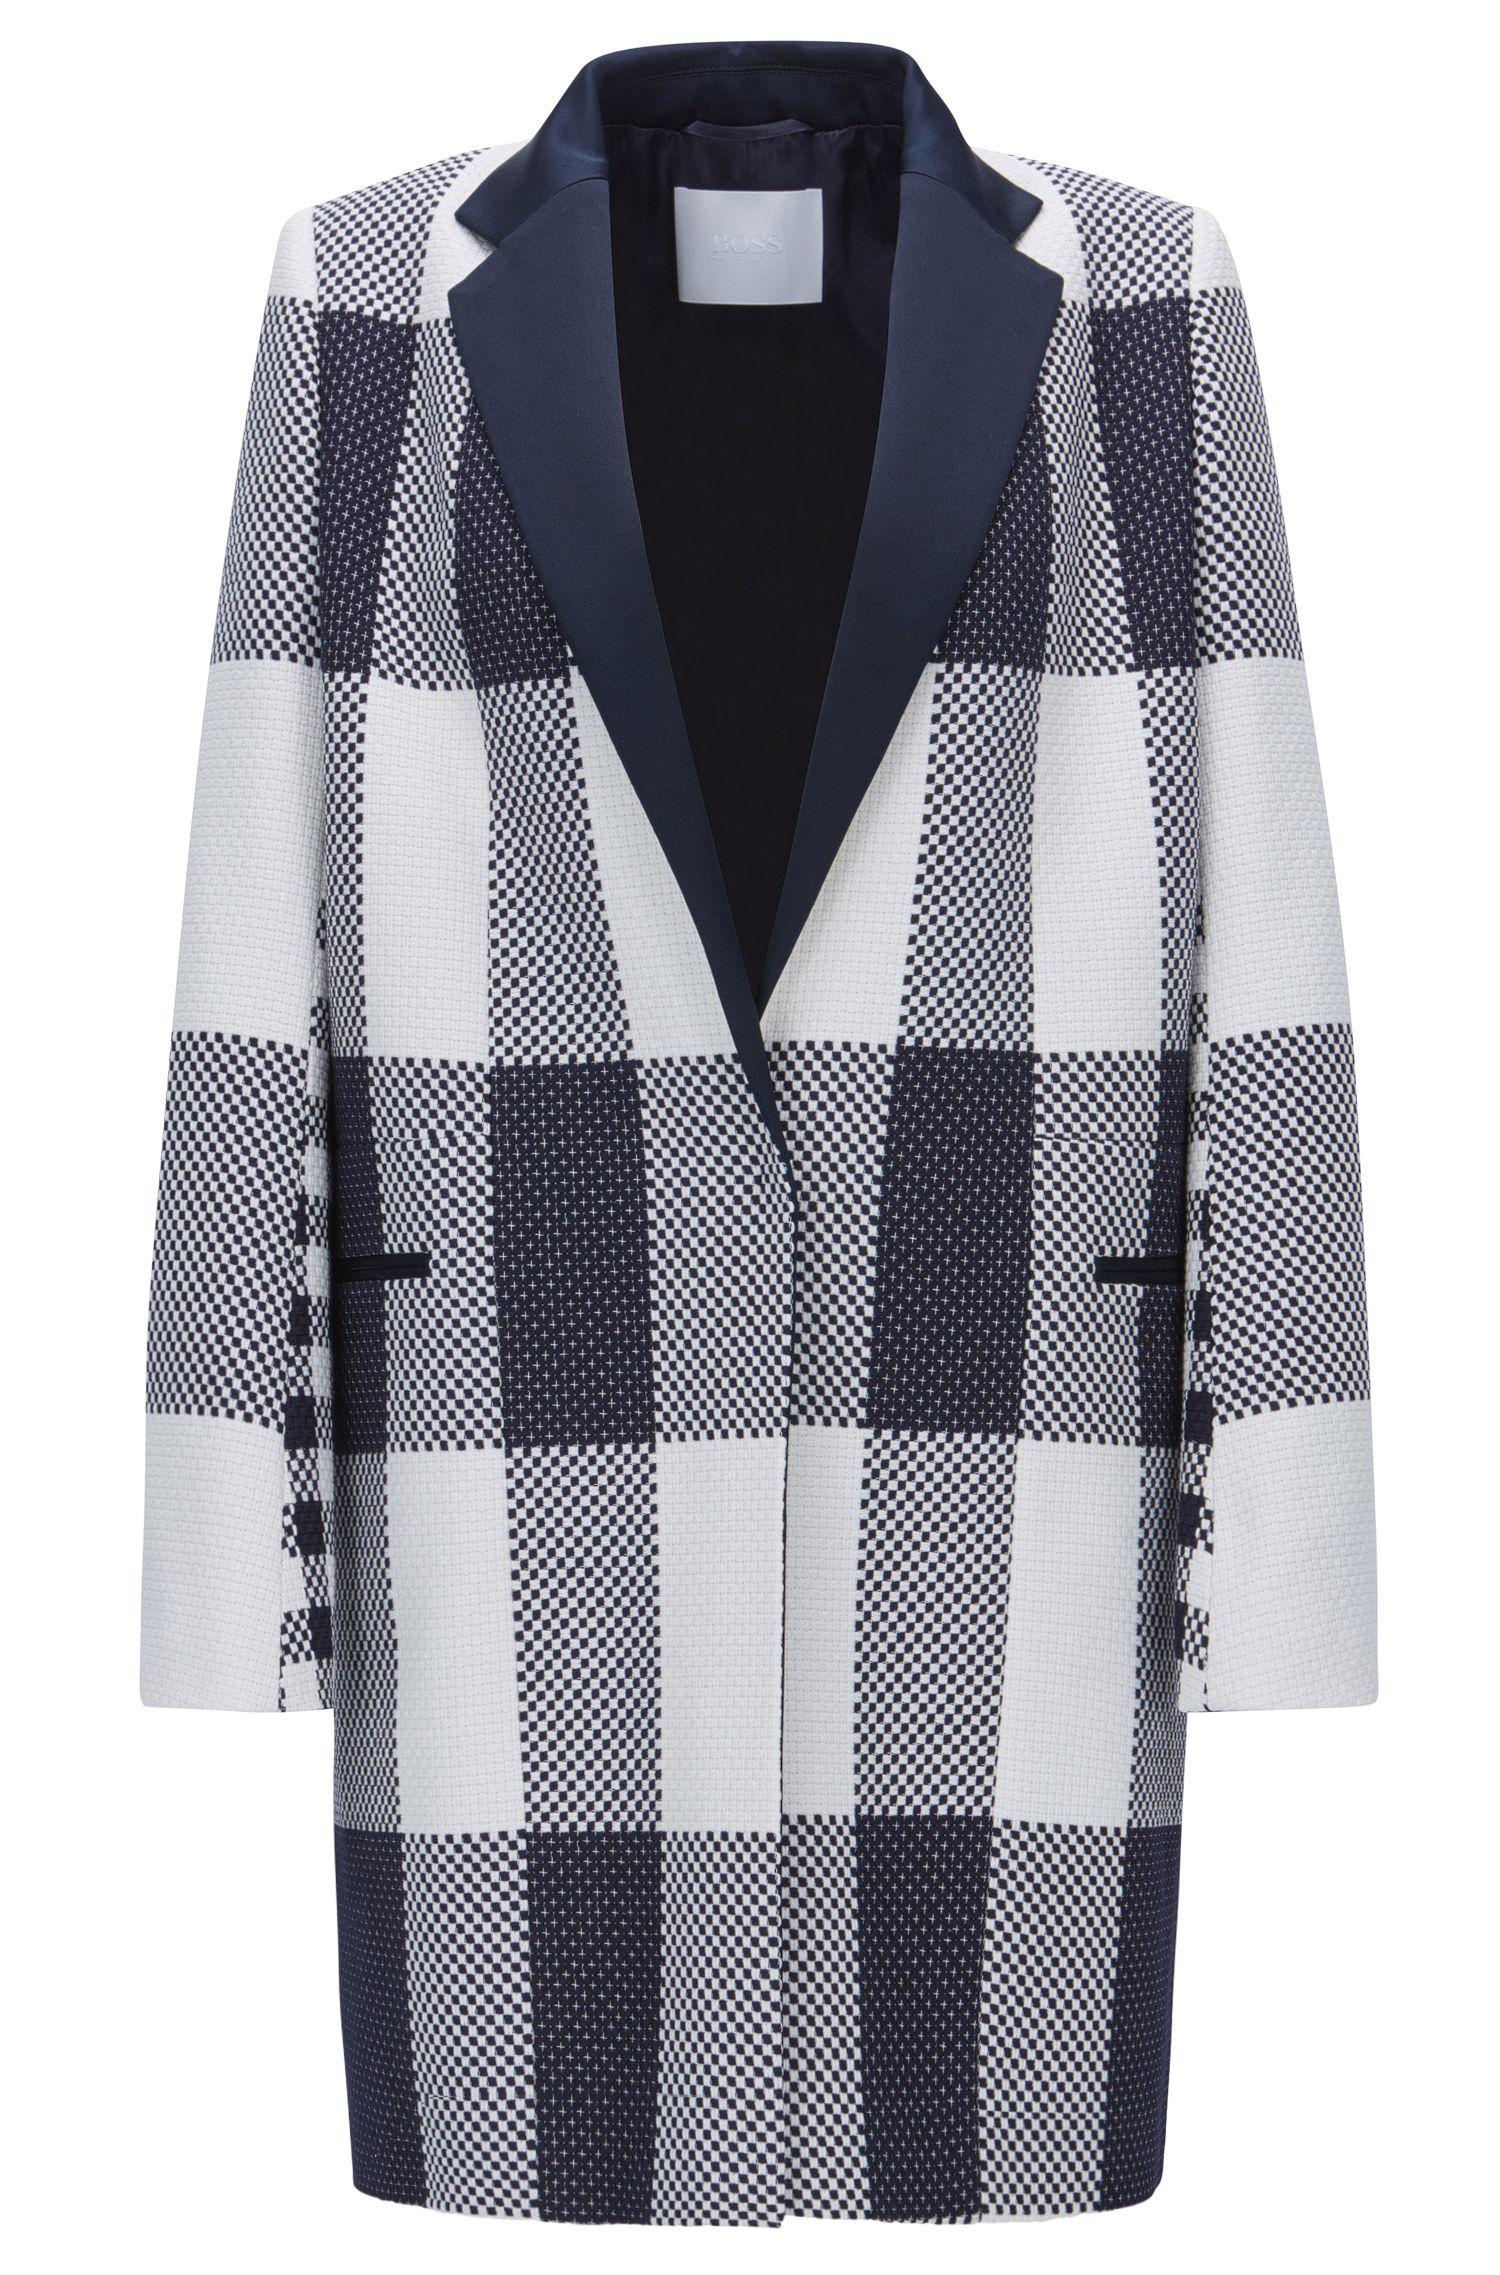 Checked relaxed-fit coat in cotton jacquard